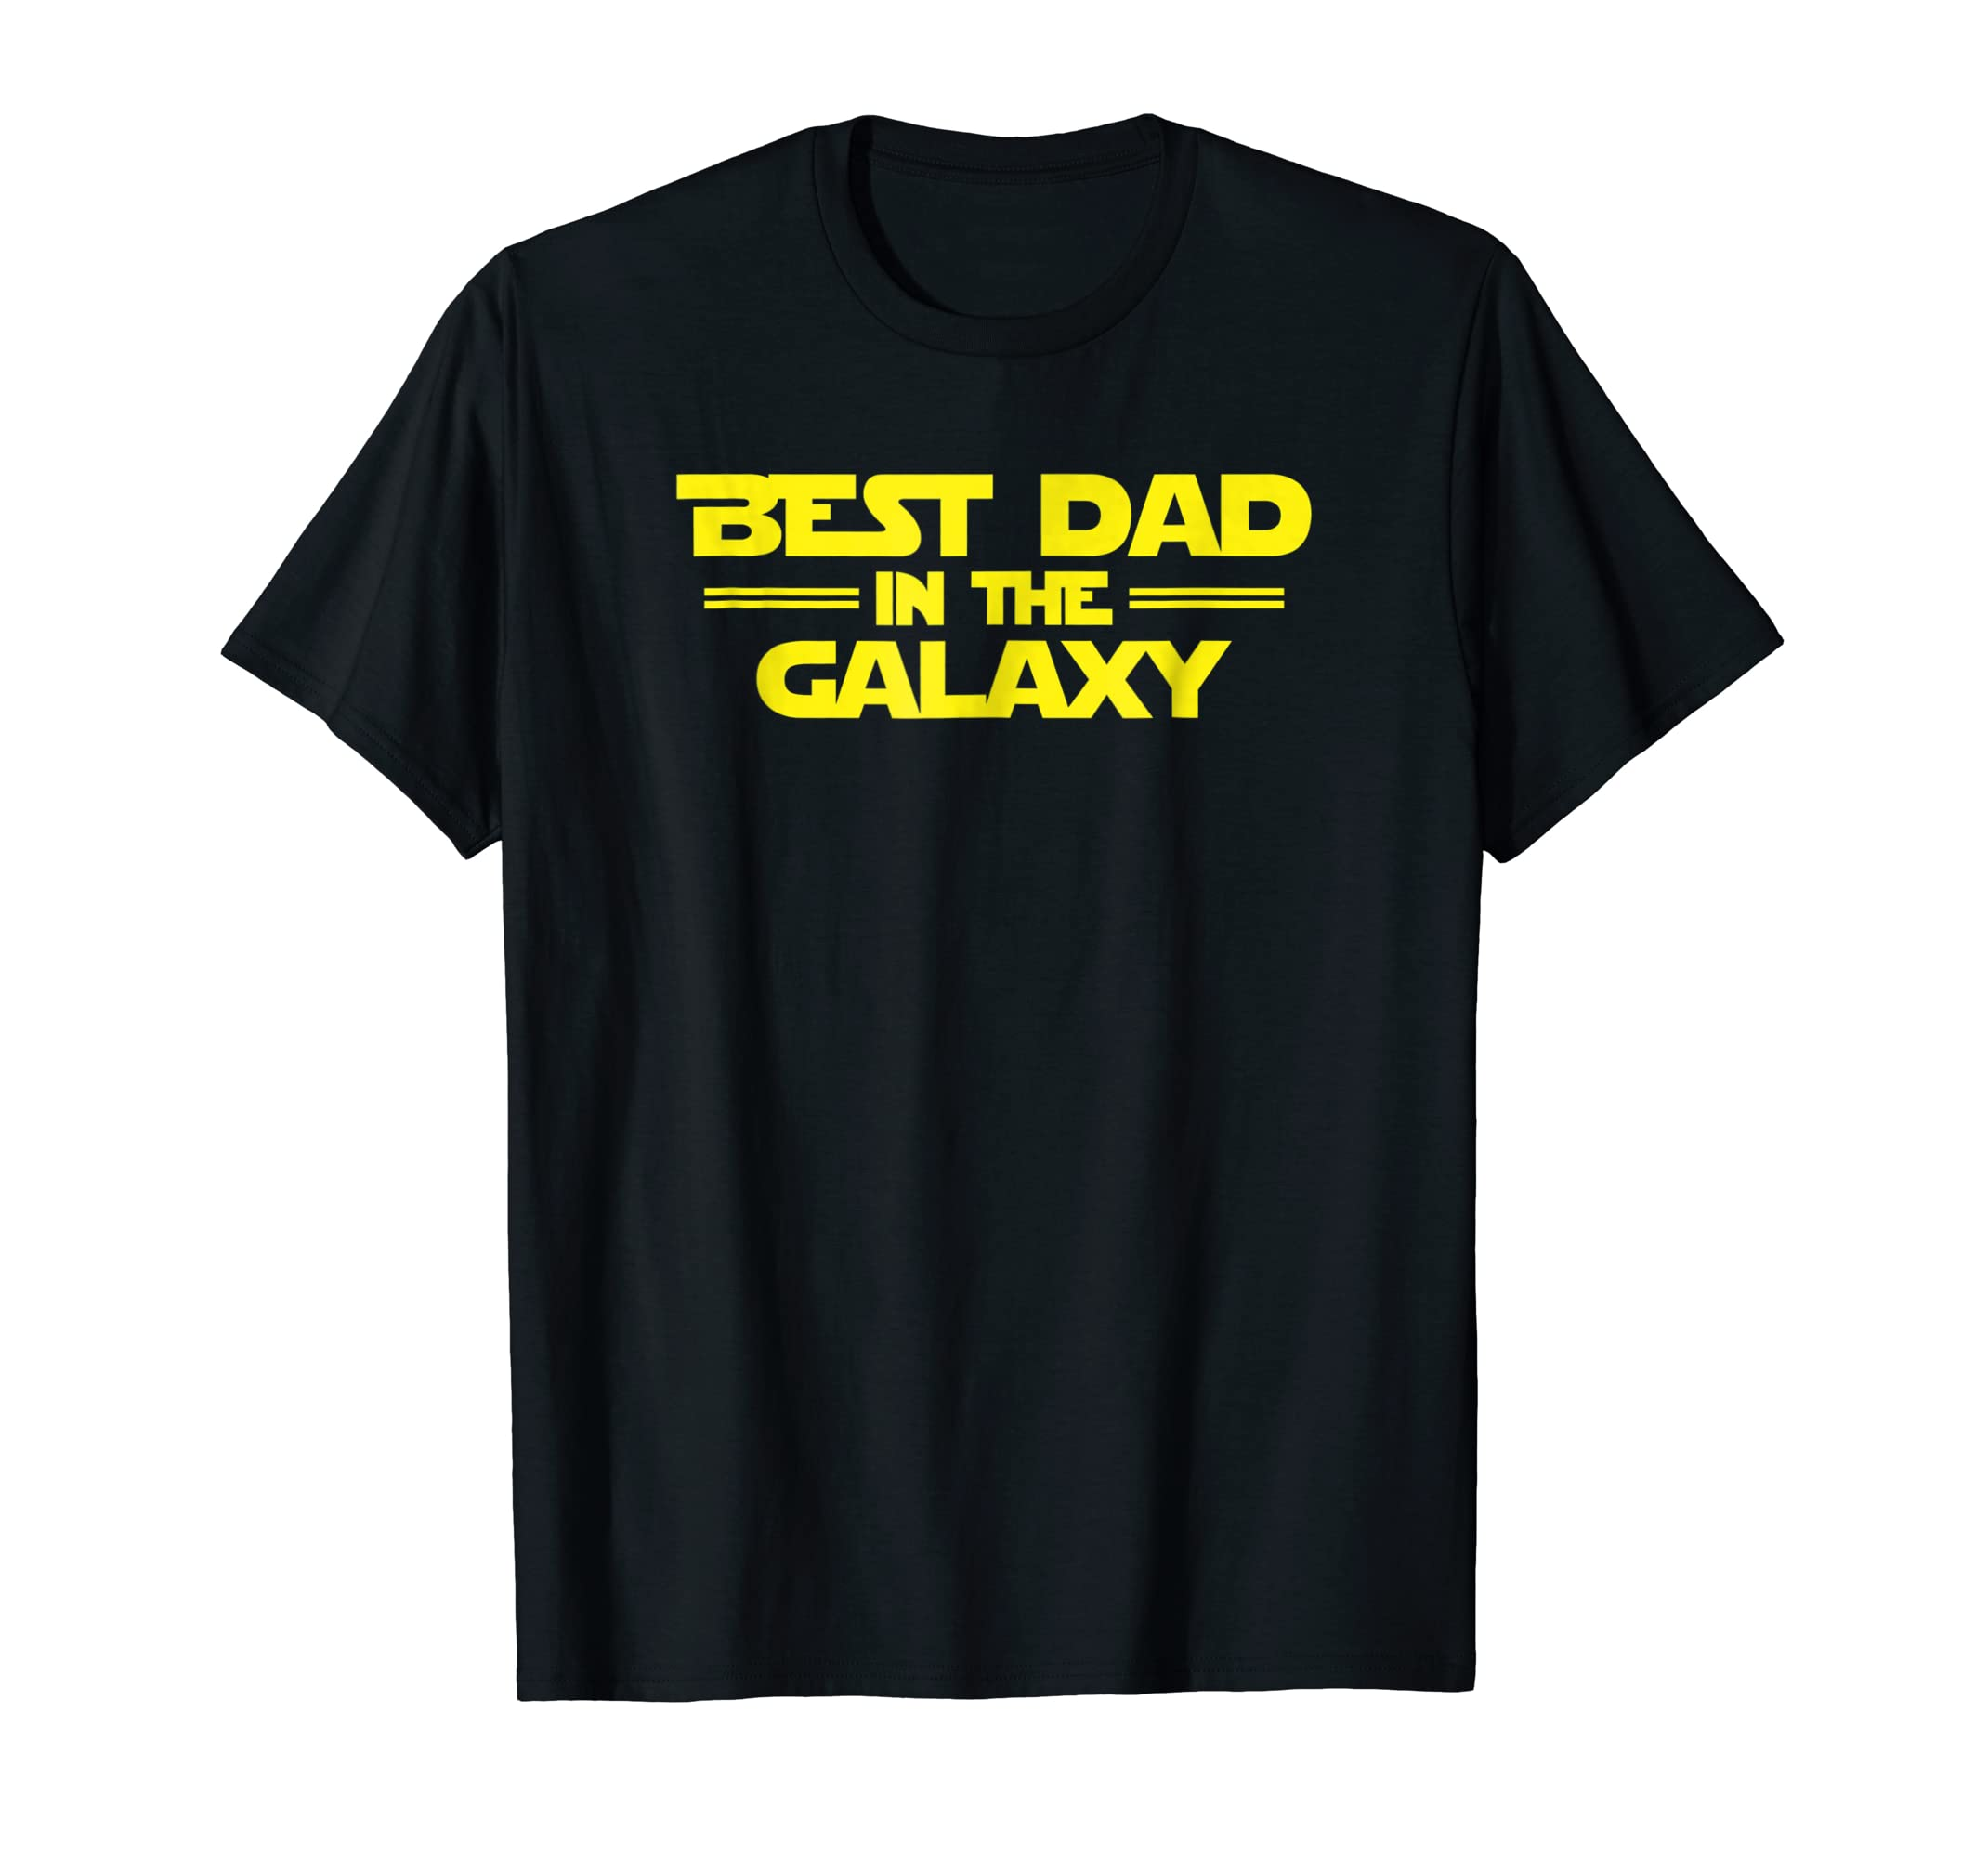 92322e114 Best Dad in the Galaxy, Funny SciFi Father's Day T-Shirt- TPT - Best ...